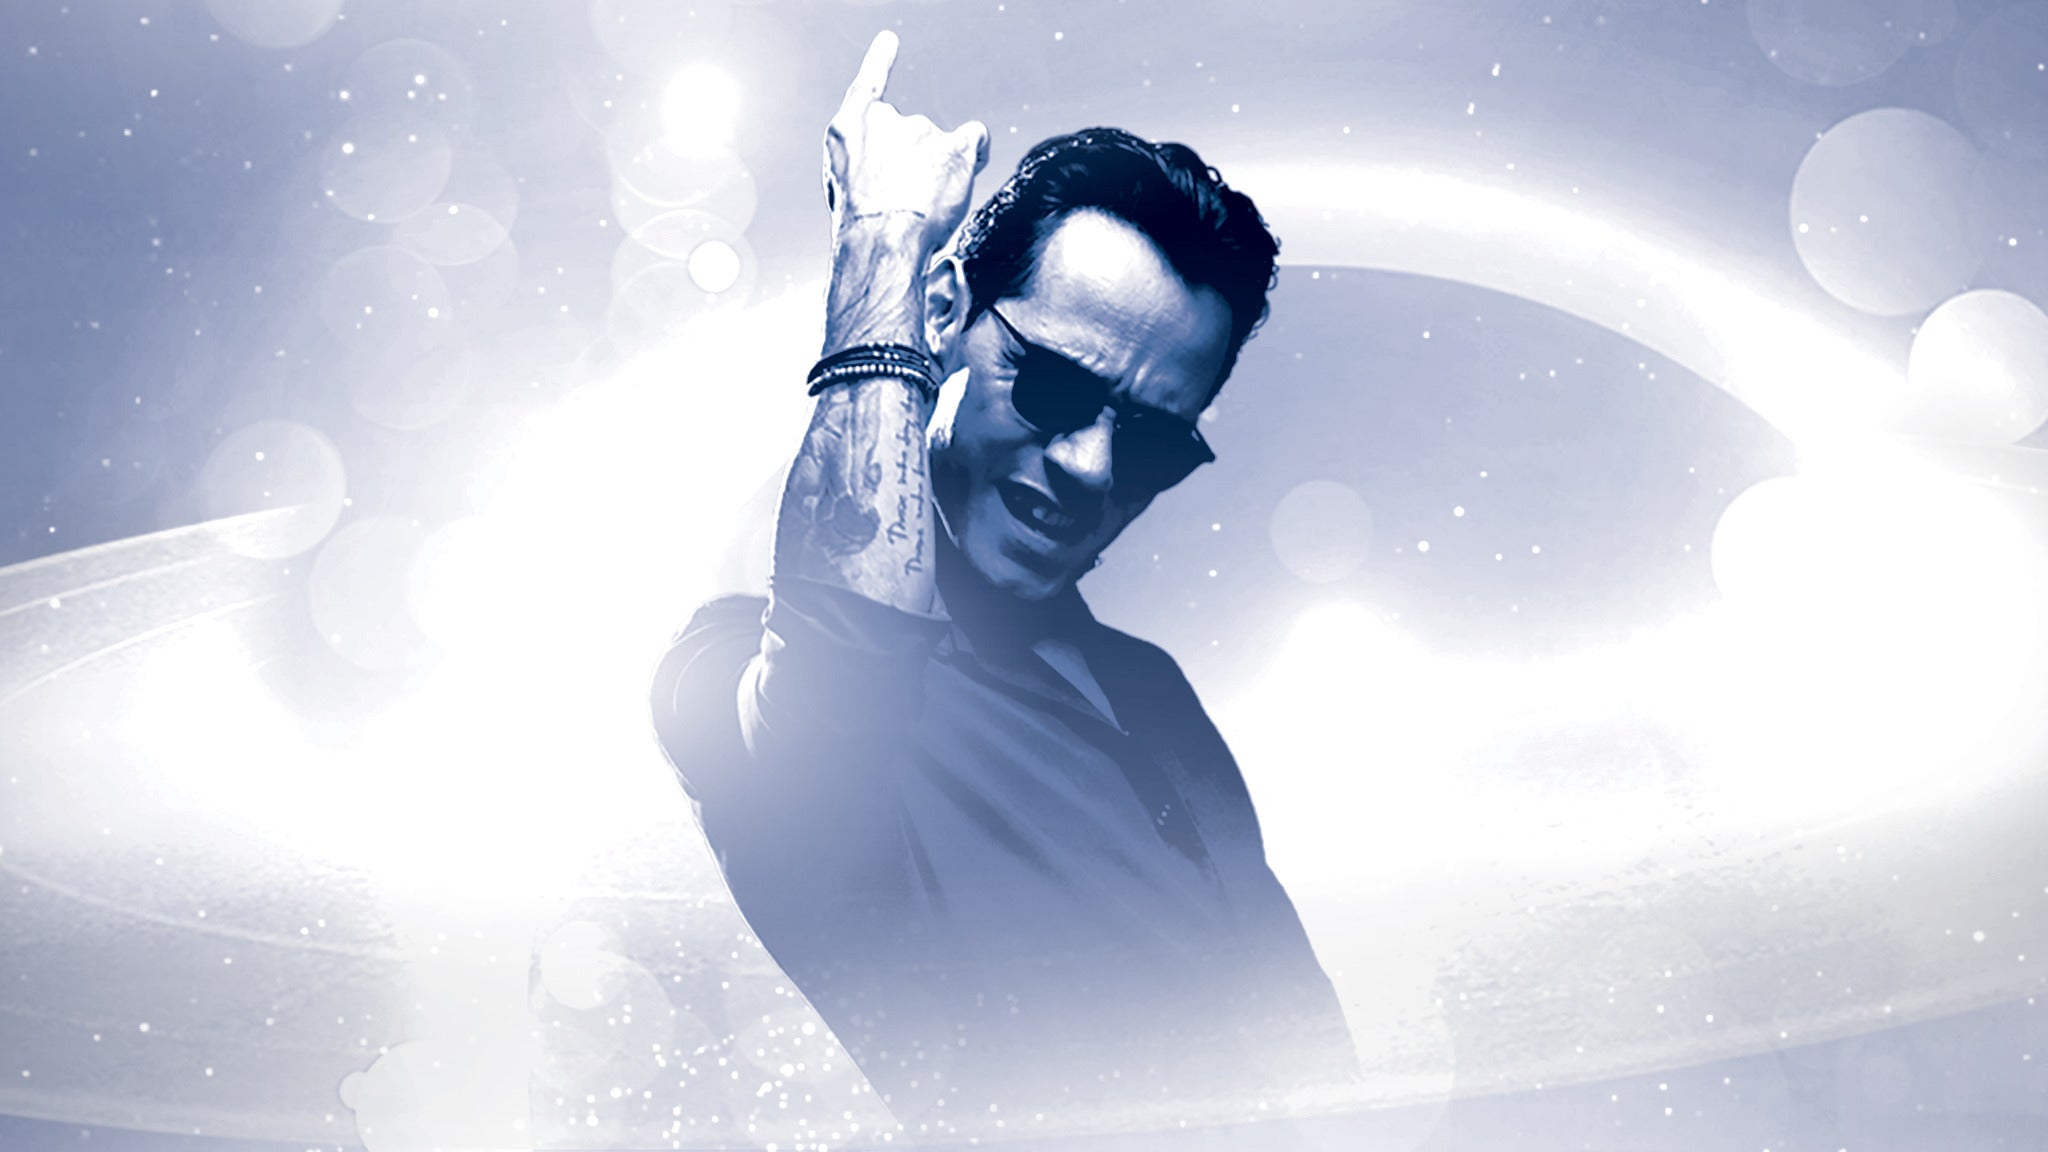 Marc Anthony at SAP Center at San Jose - San Jose, CA 95113